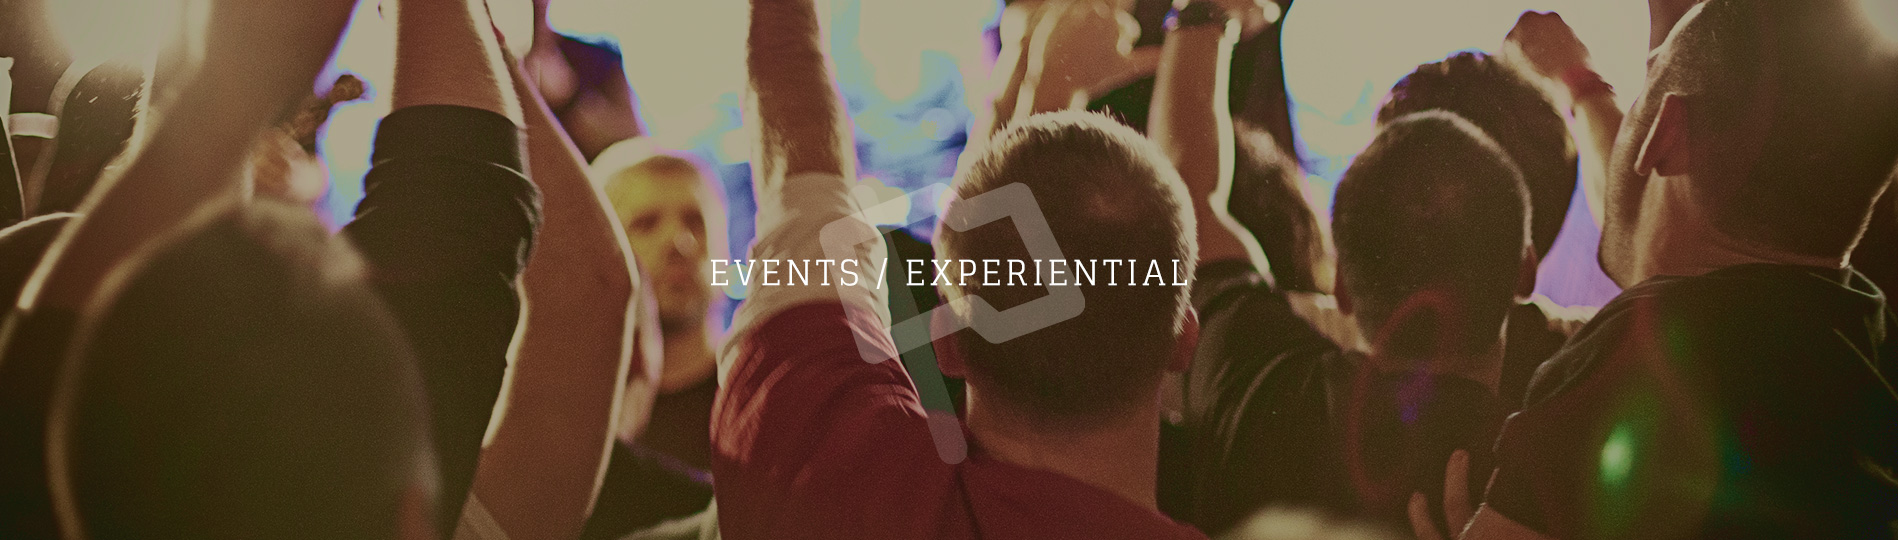 Capabilities_Experiential-Events.jpg